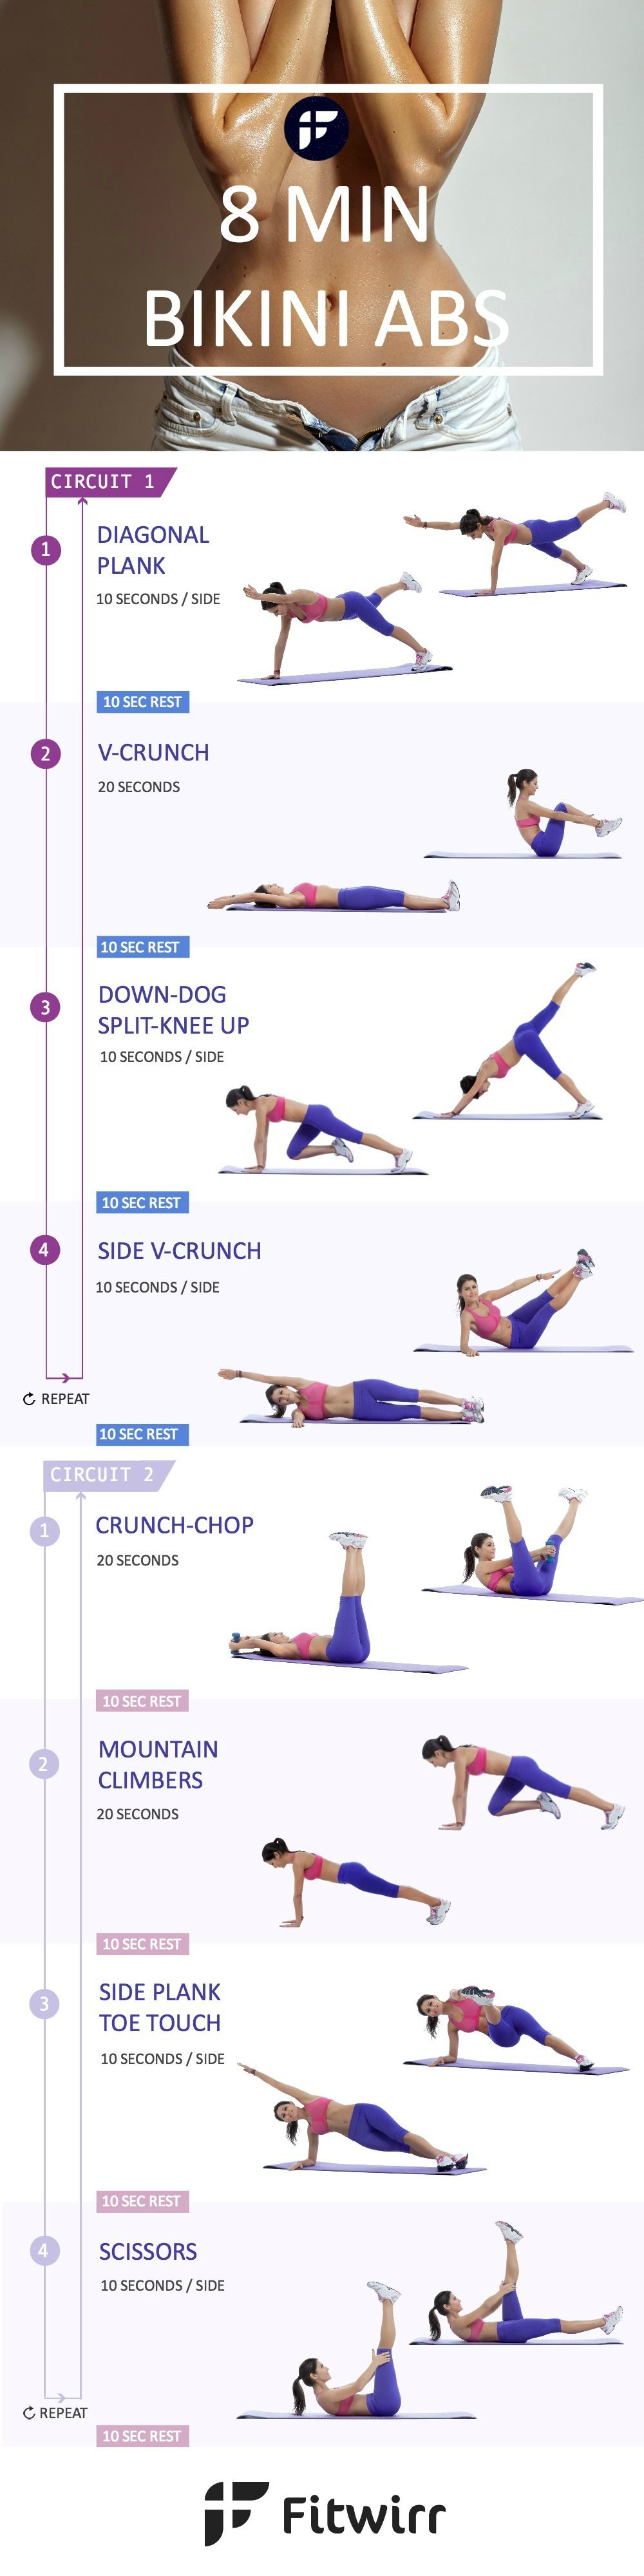 How to Lose Belly Fat Quick with 8 Minute Ab Workout . . . Might take me 10 seconds to do one side of each exercise, but let's give it a try!